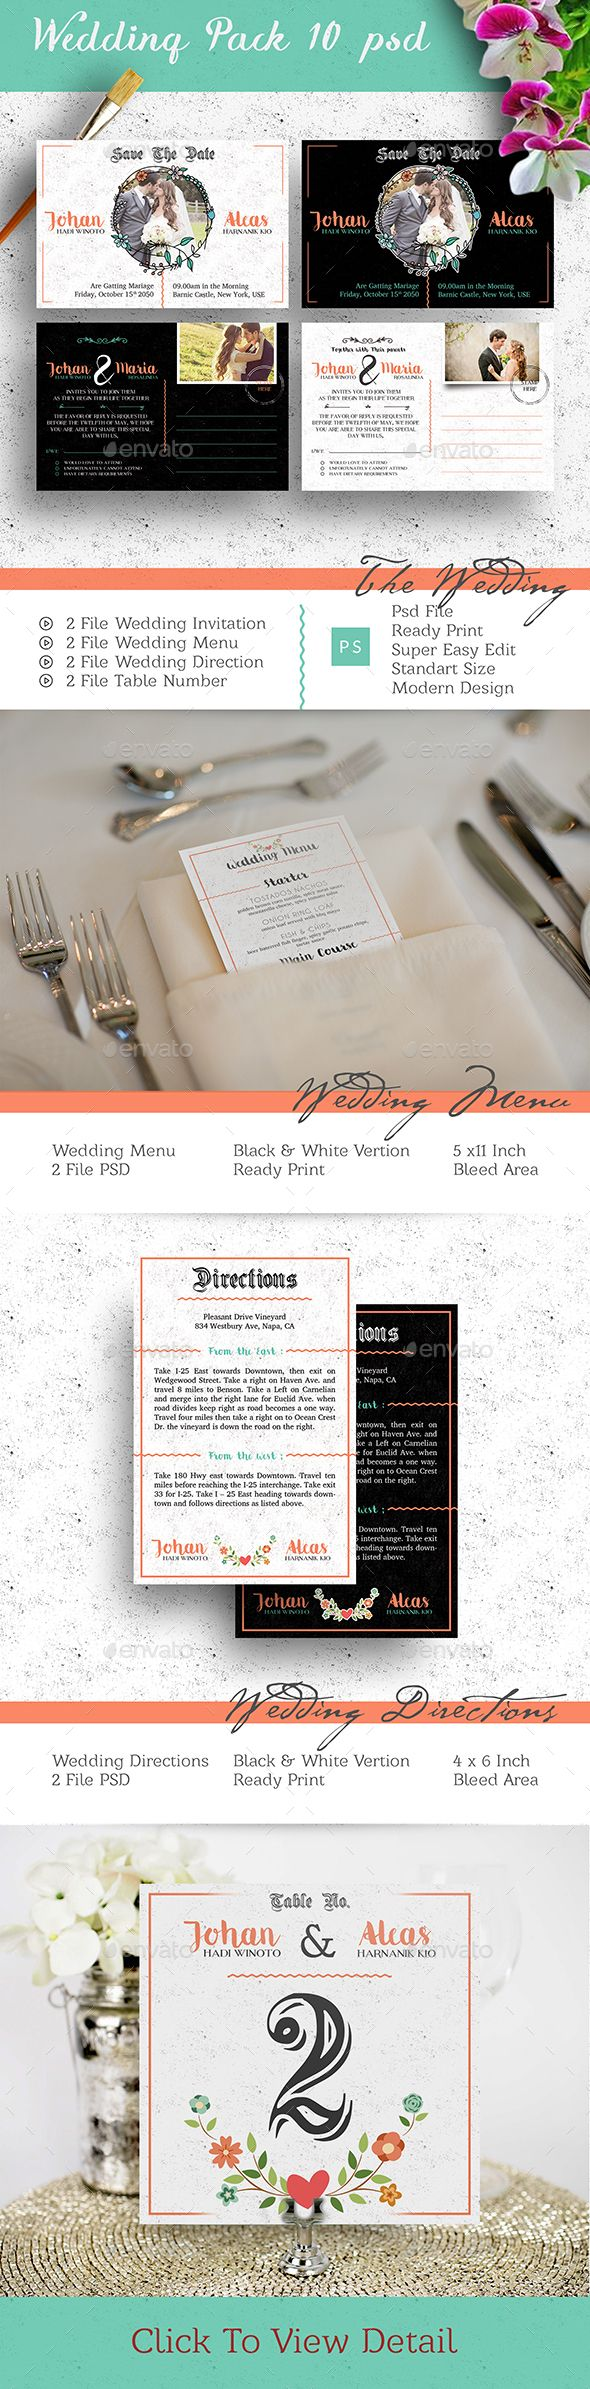 Wedding invitation pack the perfect way to make the best impression wedding invitation pack the perfect way to make the best impression modern layout stopboris Image collections